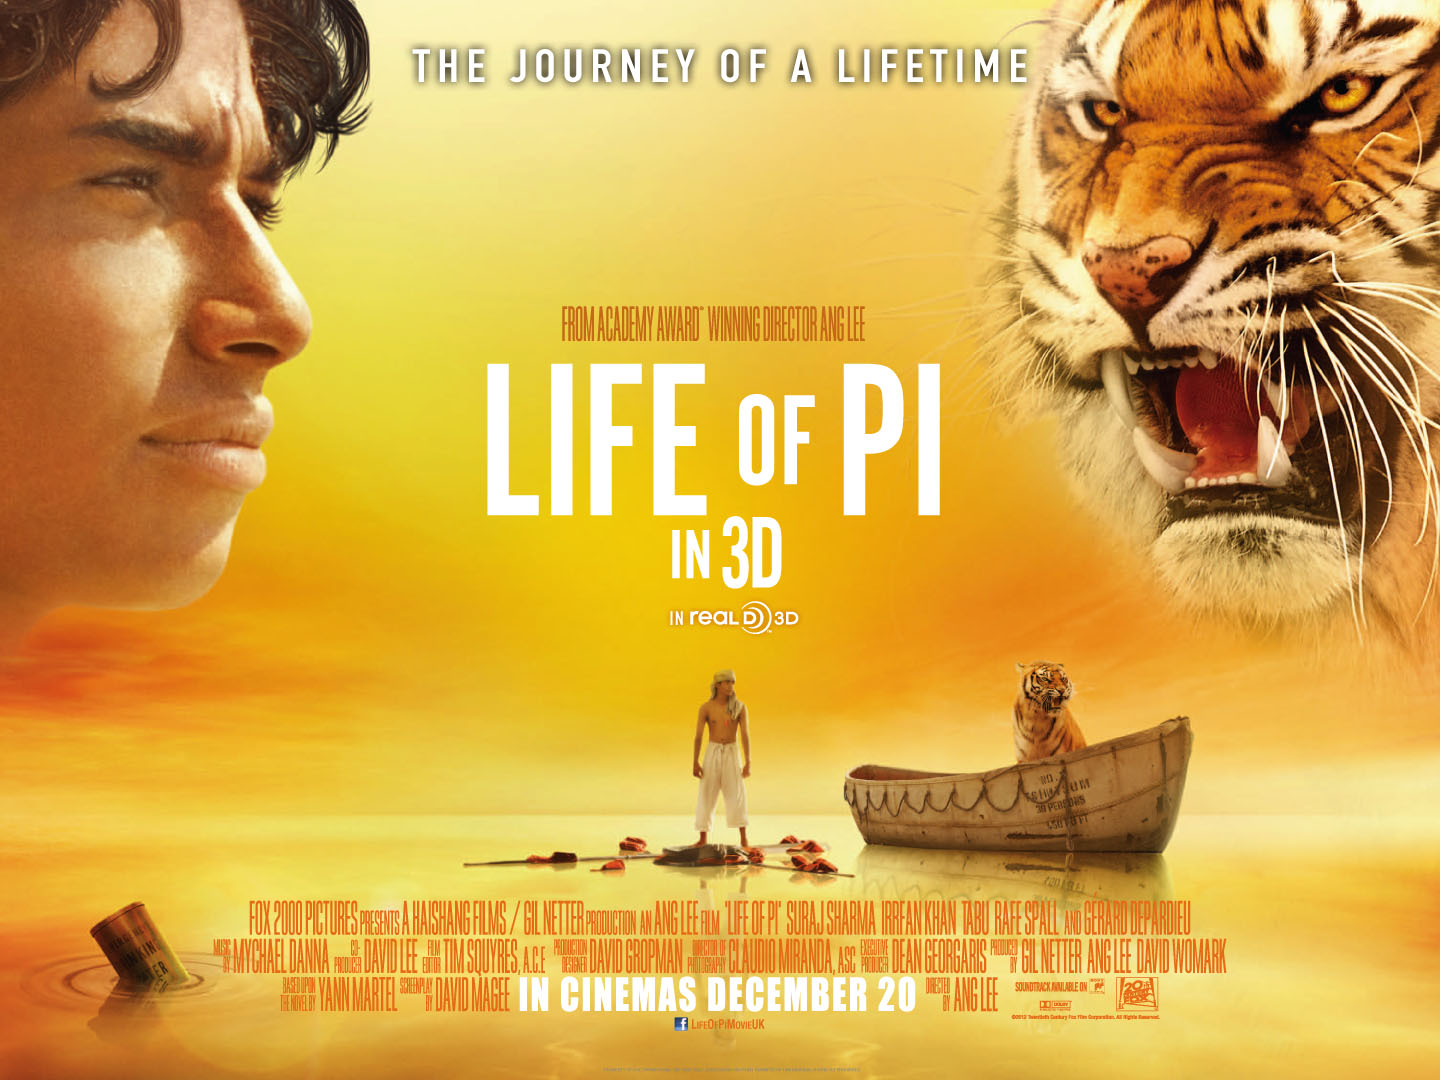 Life of pi full movie tamil dubbed hindi dubbed download for Life of pi in hindi